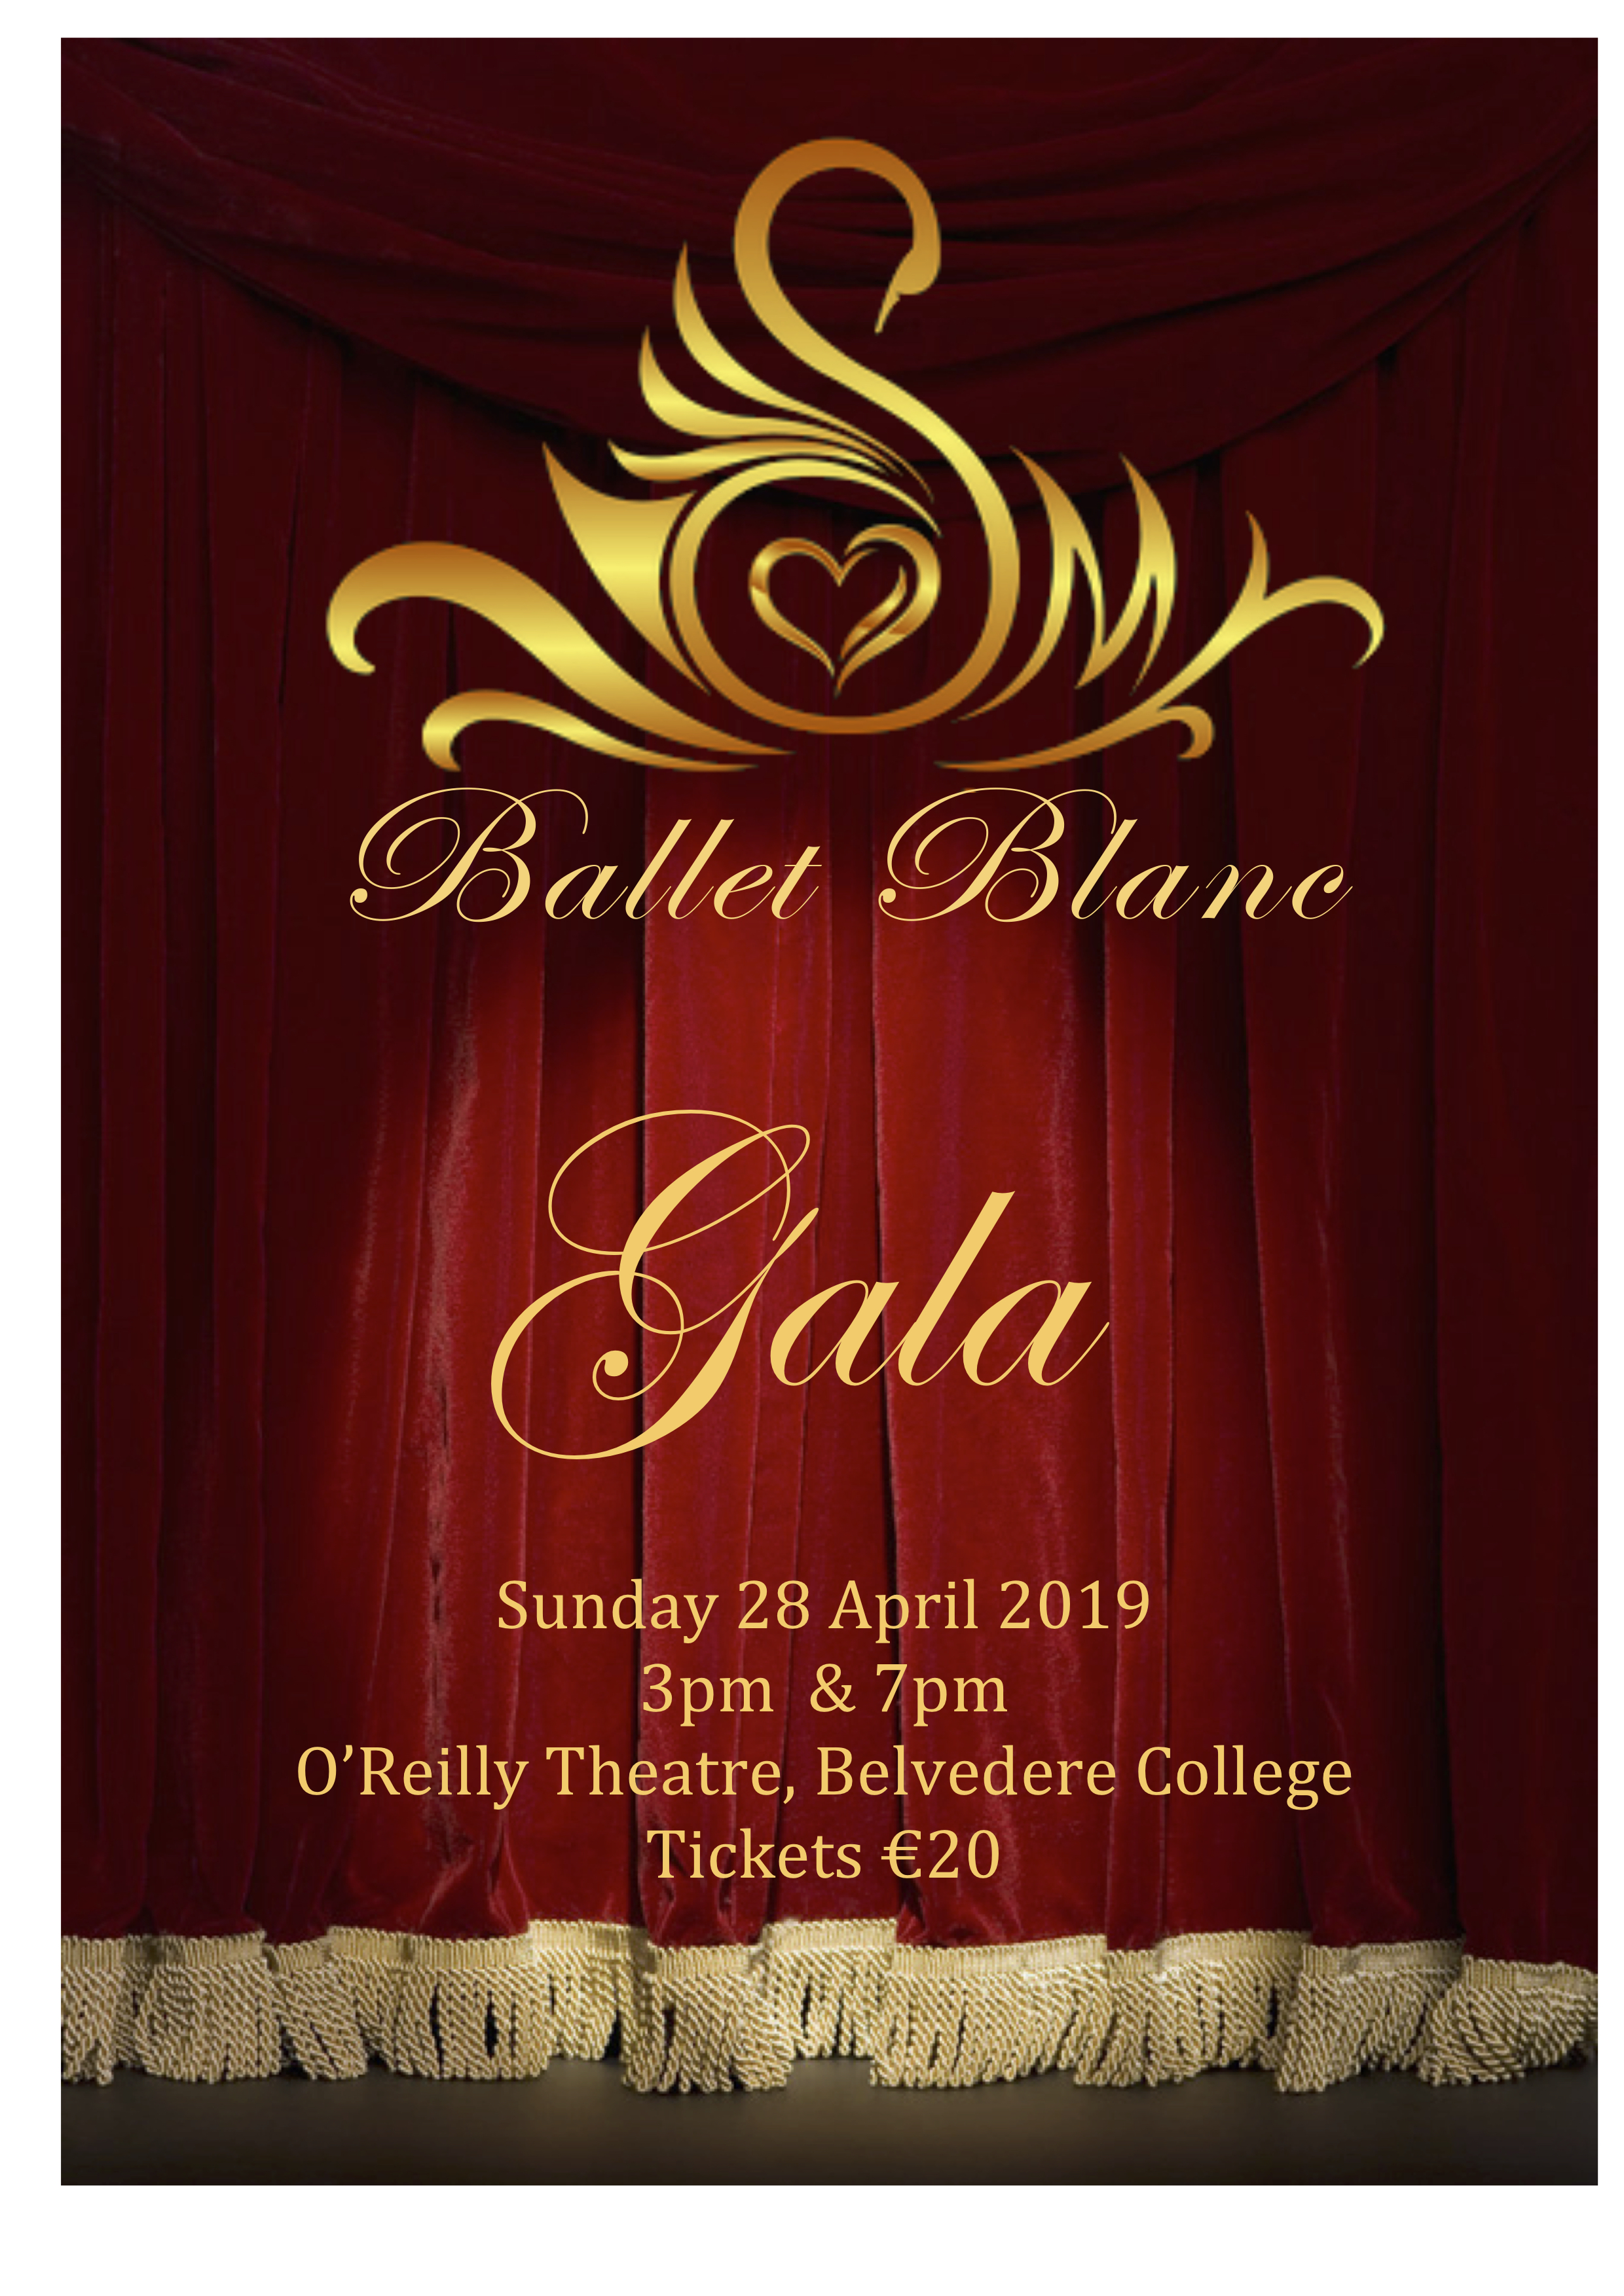 """- Tickets are now available for our Spring """"Ballet Blanc"""" Gala.Date: 28 April 2019 (Sunday).Performances at: 3pm Matinee & 7pm EveningVenue: The O'Reilly Theatre, located inside the grounds of Belvedere College, 6 Great Denmark Street, Rotunda, Dublin City Centre.Also available:Note: Tickets will also be available at the door. The Theatre is fully wheelchair accessible. This is a family-friendly show of approx 1hr:15min in length."""